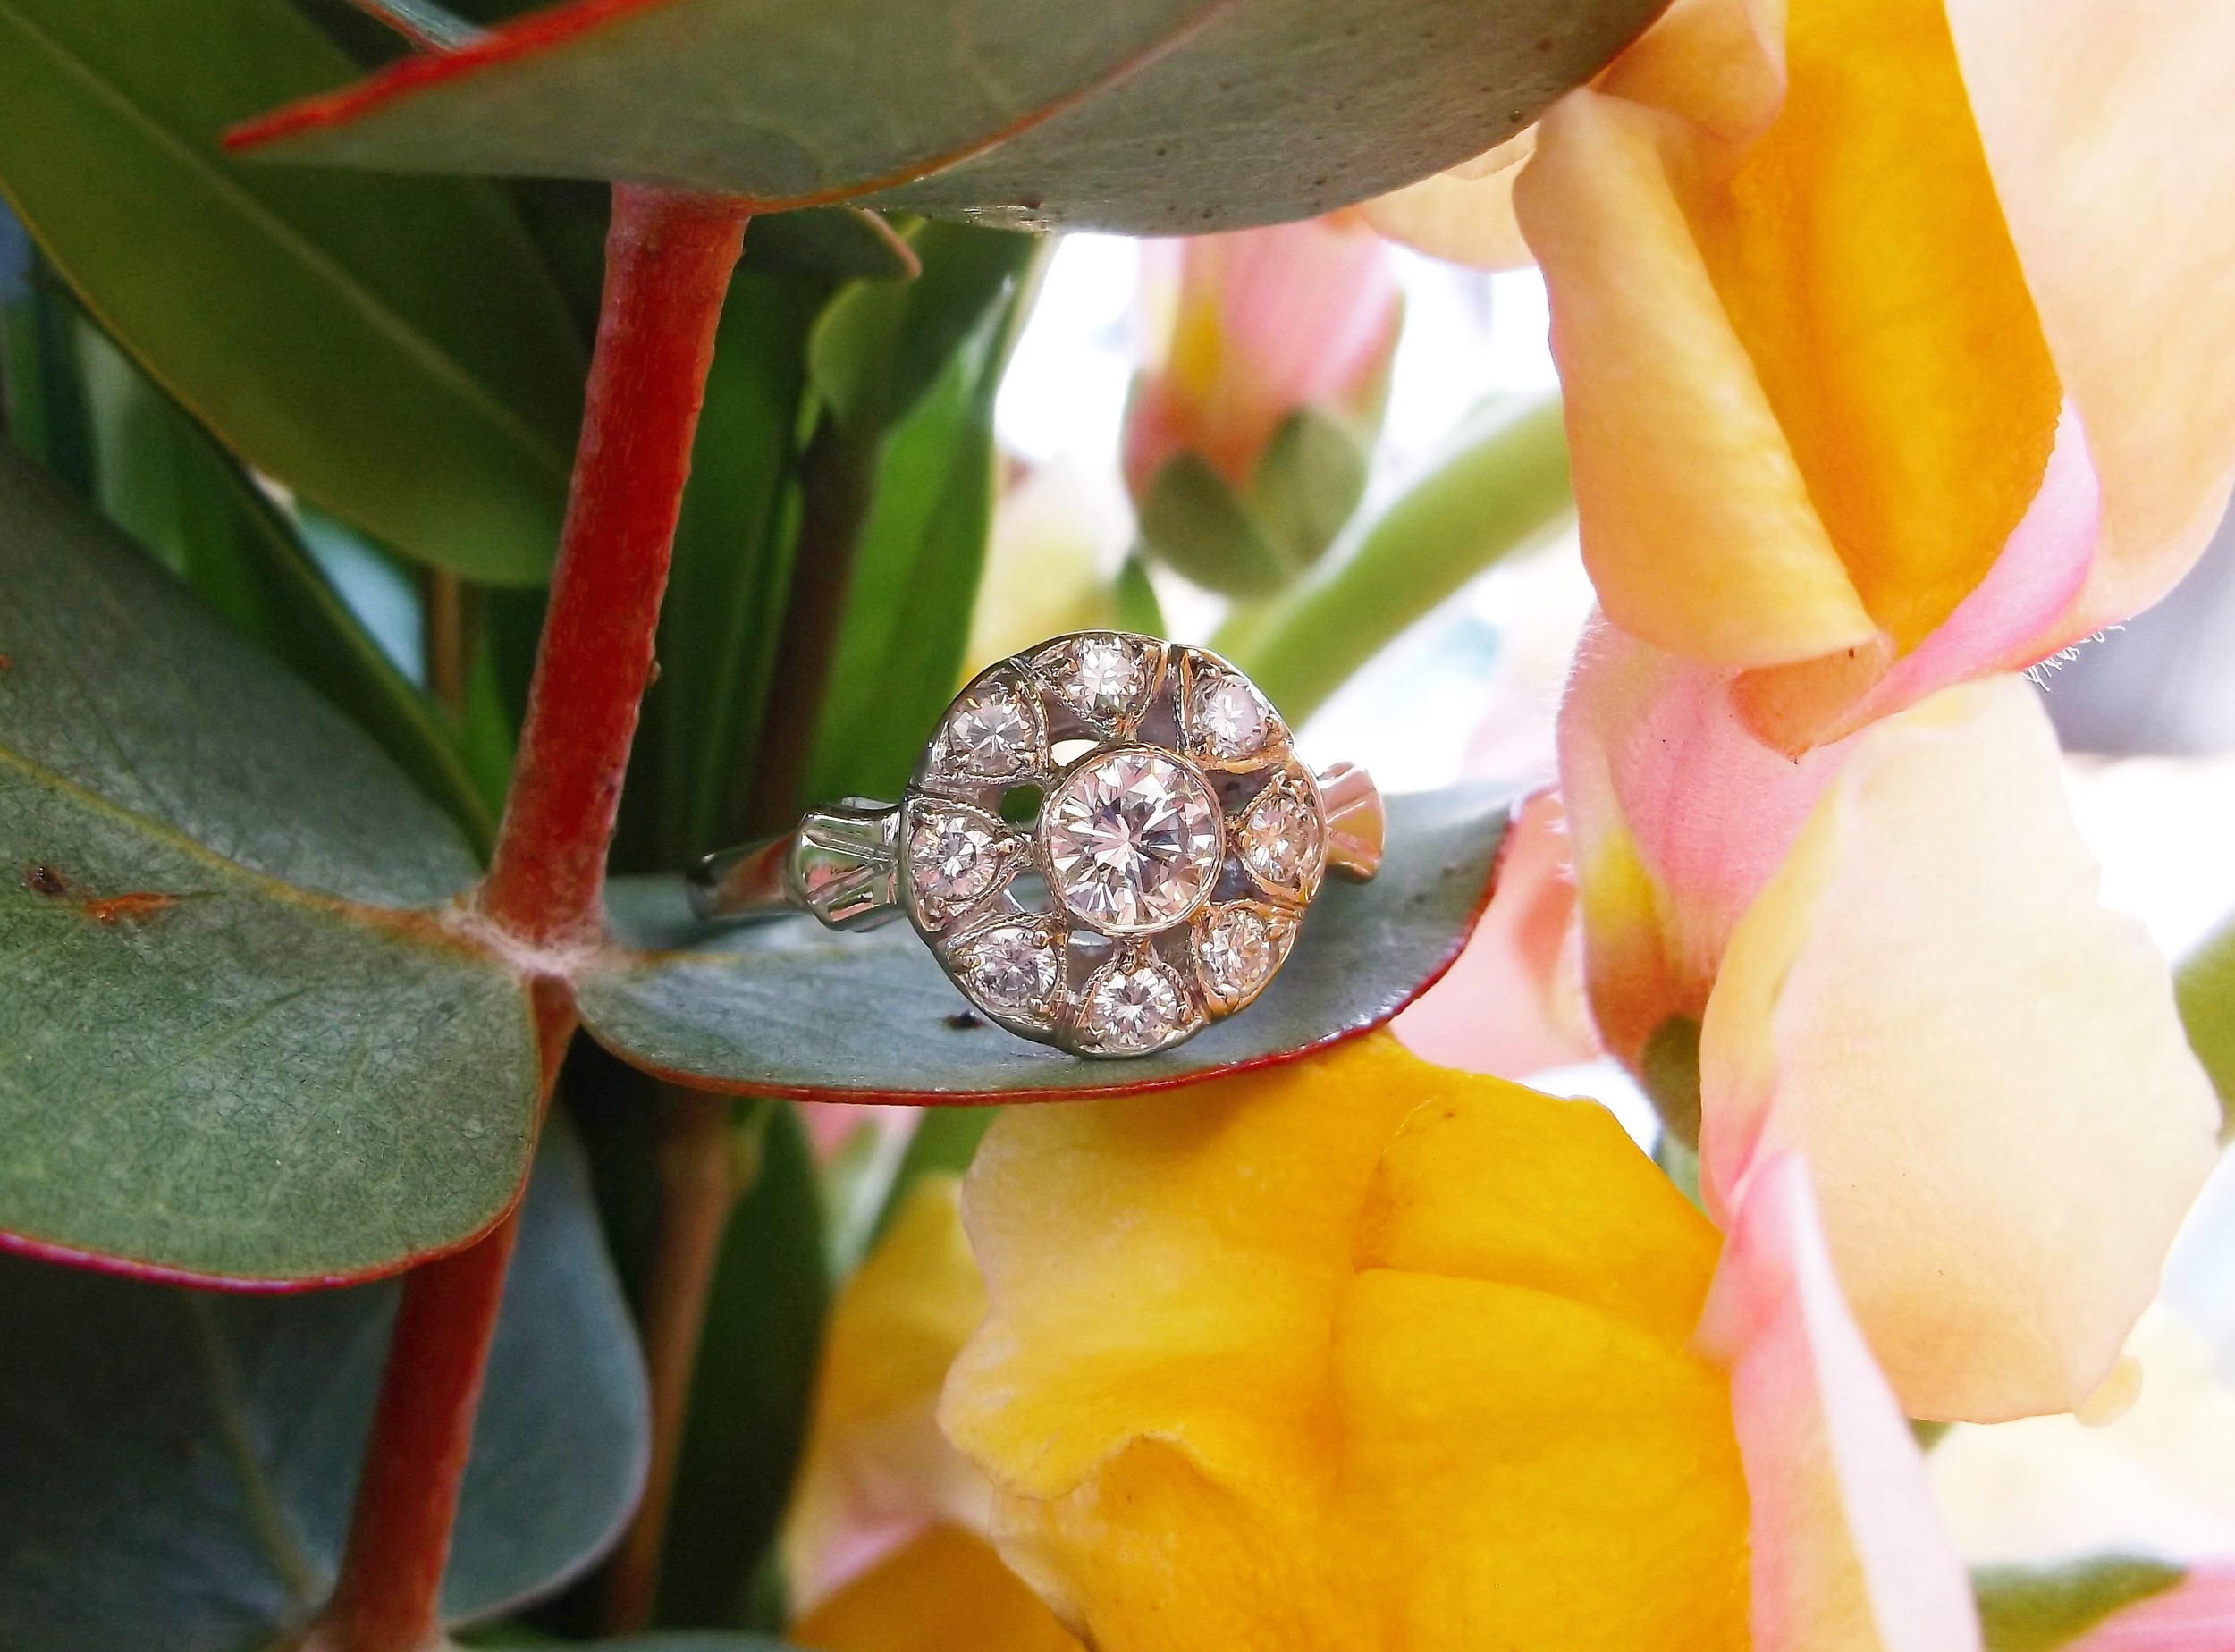 SOLD - Lovely 1930's 14K white gold and diamond ring with 0.56 carats total weight in diamonds.